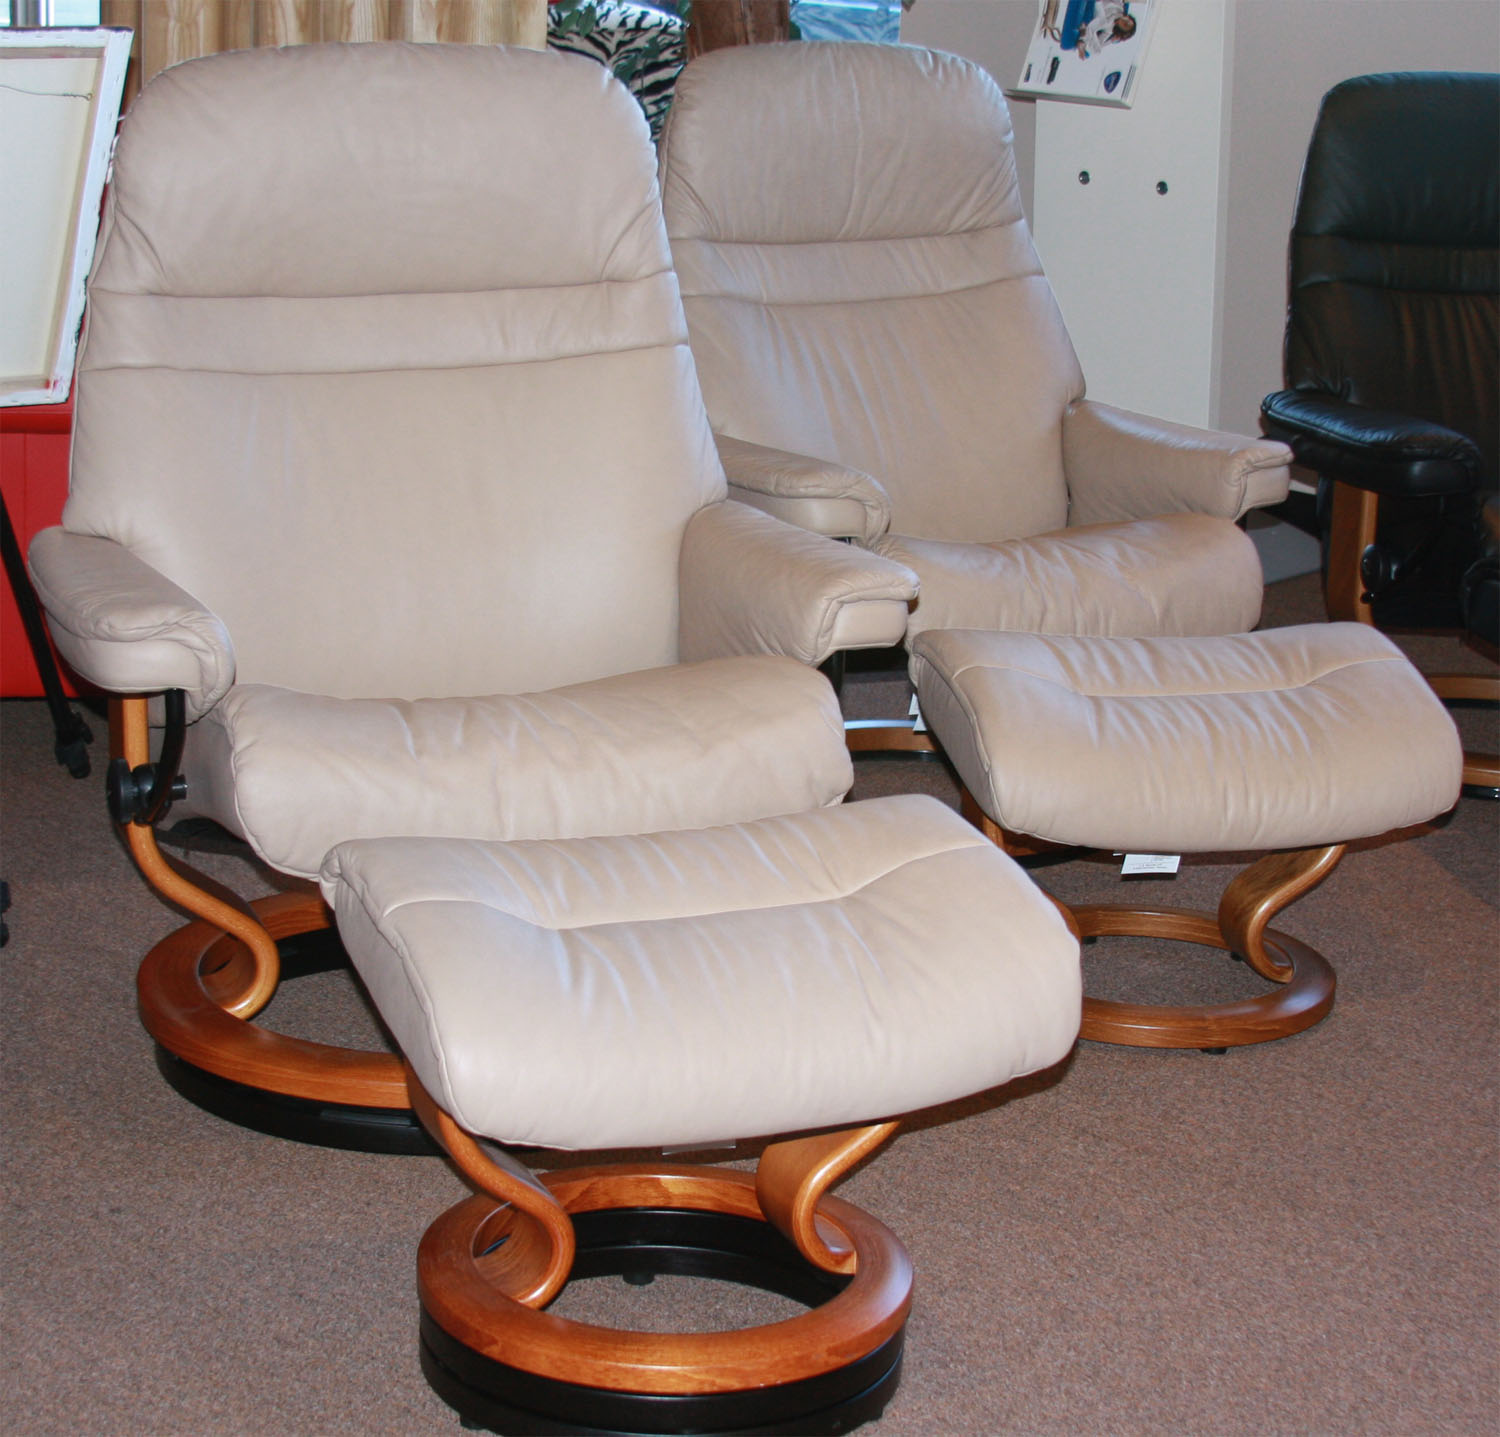 stressless sunrise recliners chairs by ekornes recliner. Black Bedroom Furniture Sets. Home Design Ideas